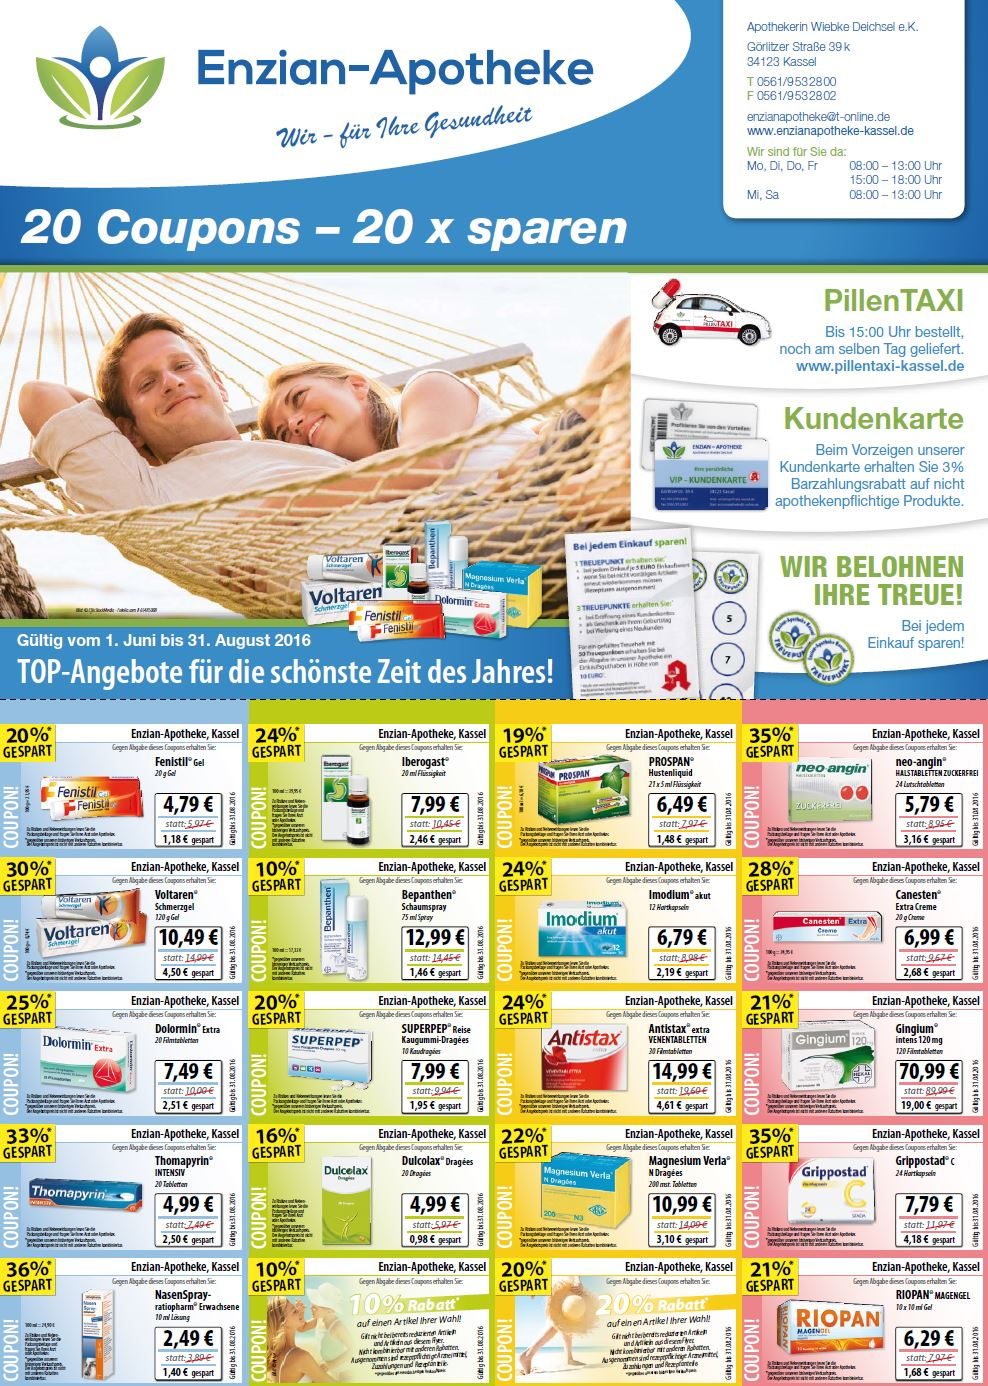 enzian-apotheke-kassel_coupons_juni-august-16